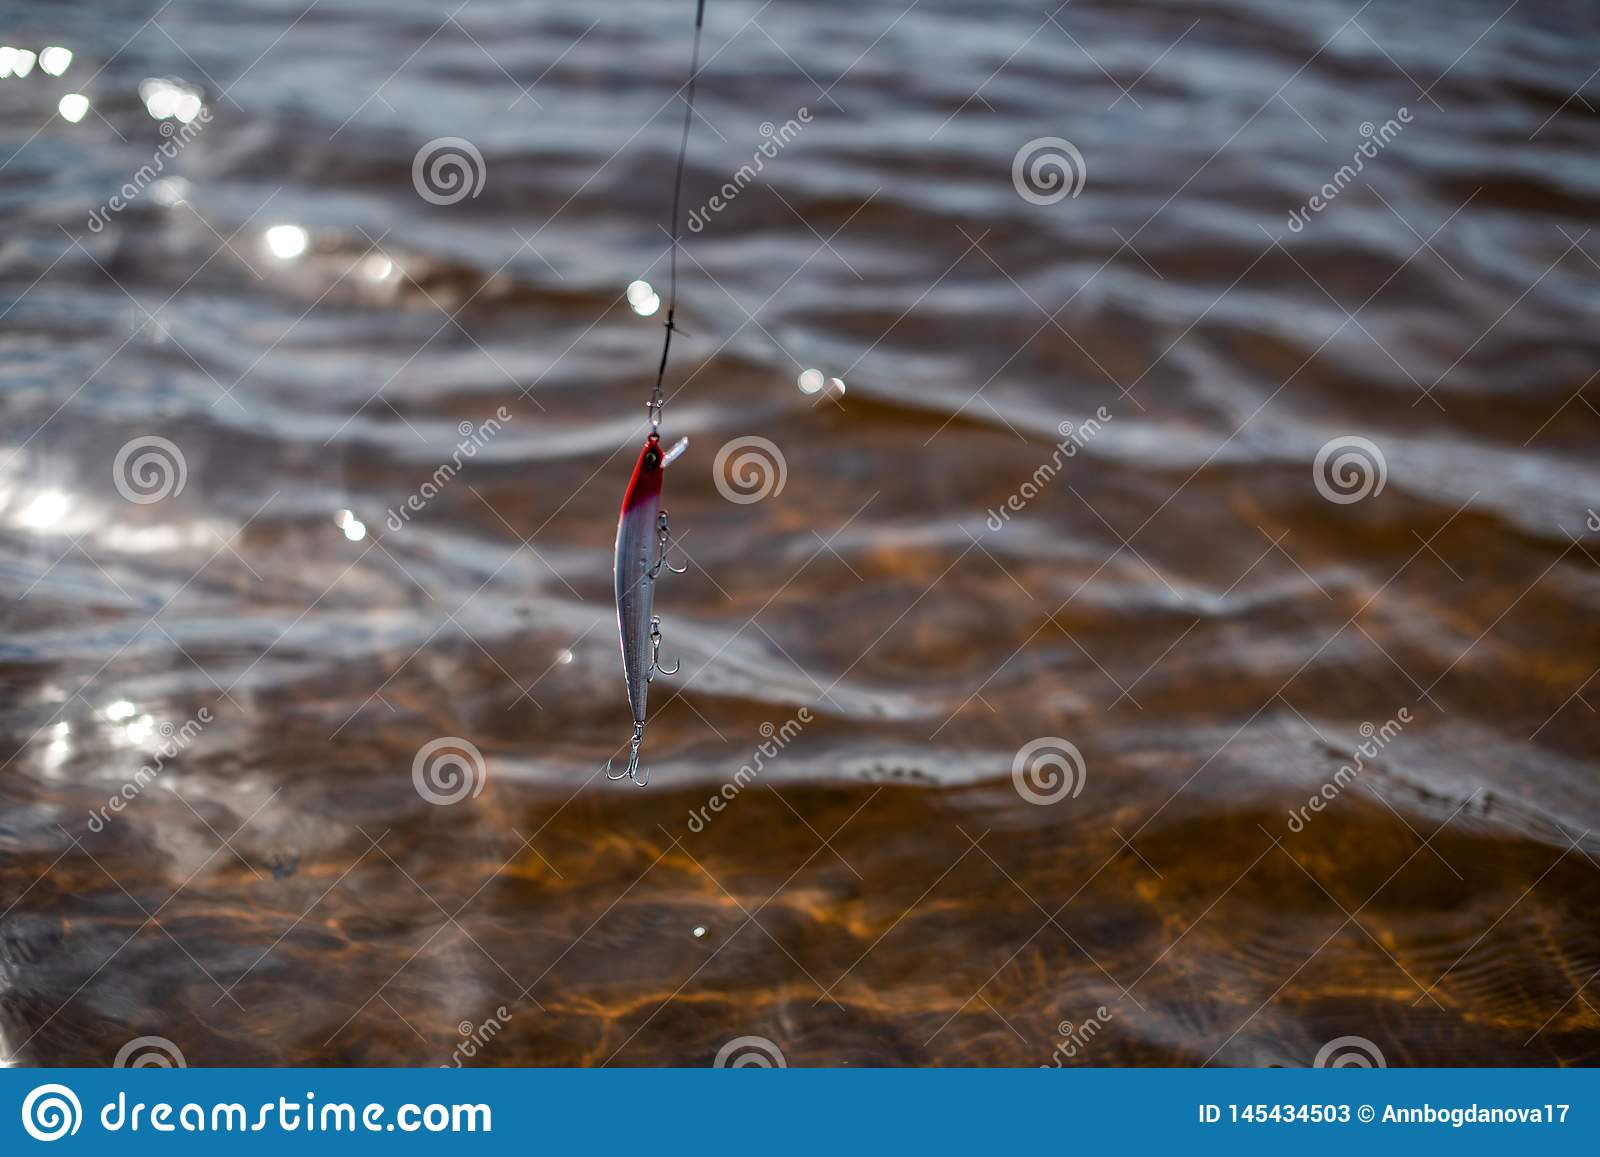 Fishing tackle for fishing on the background of water